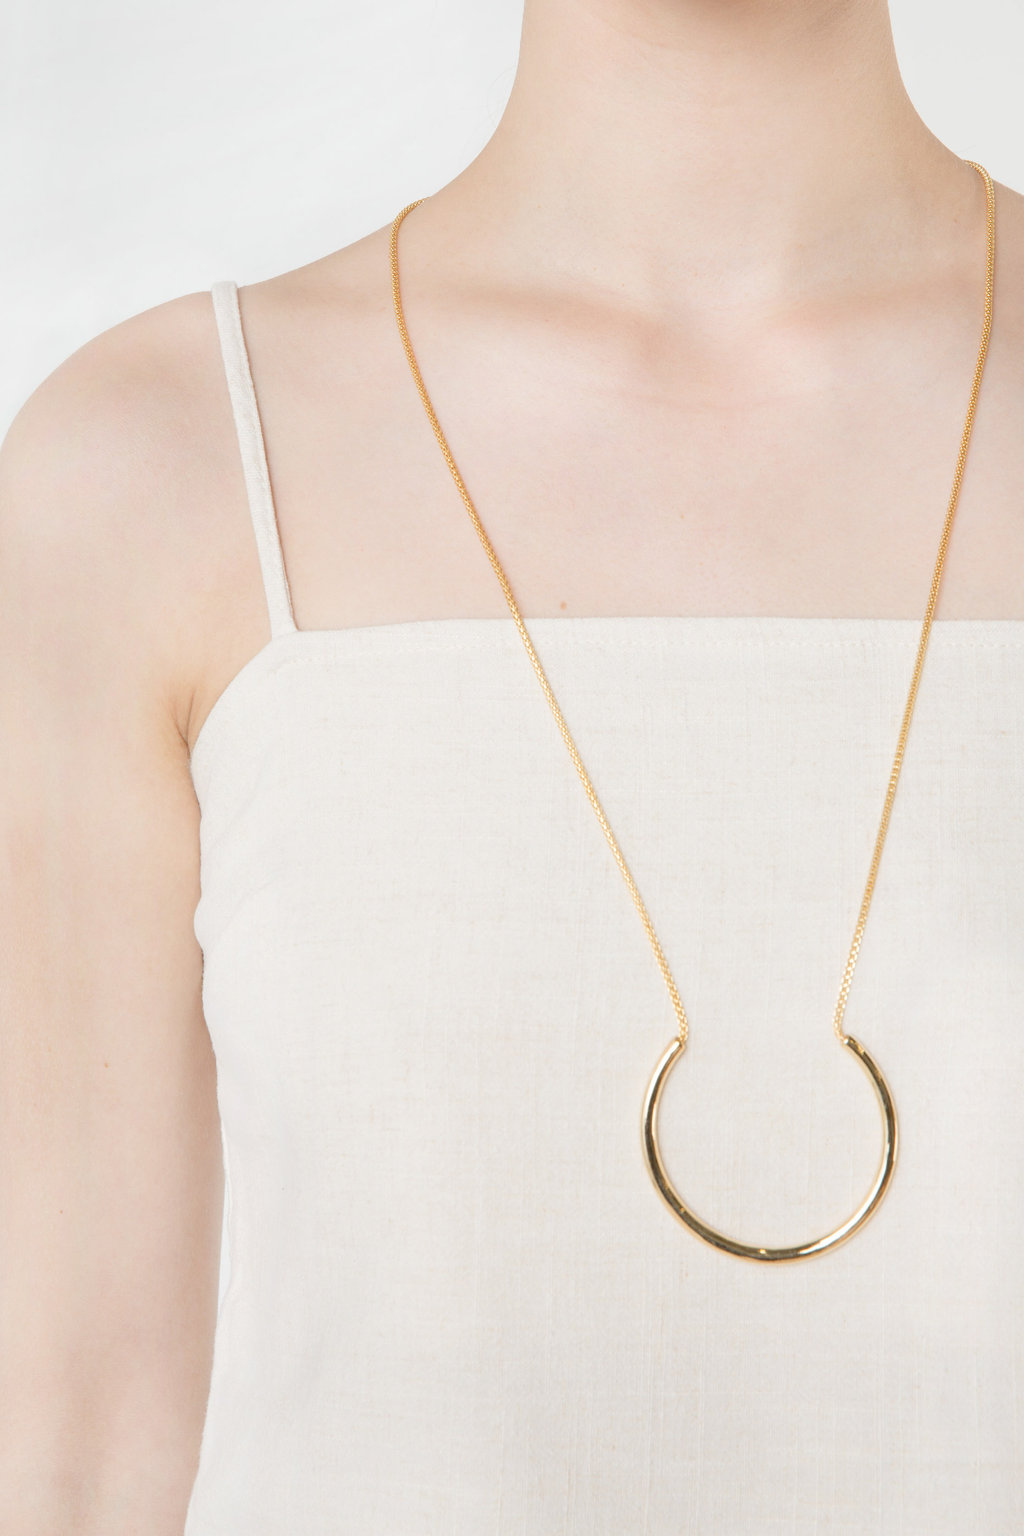 Necklace H046 Gold 2